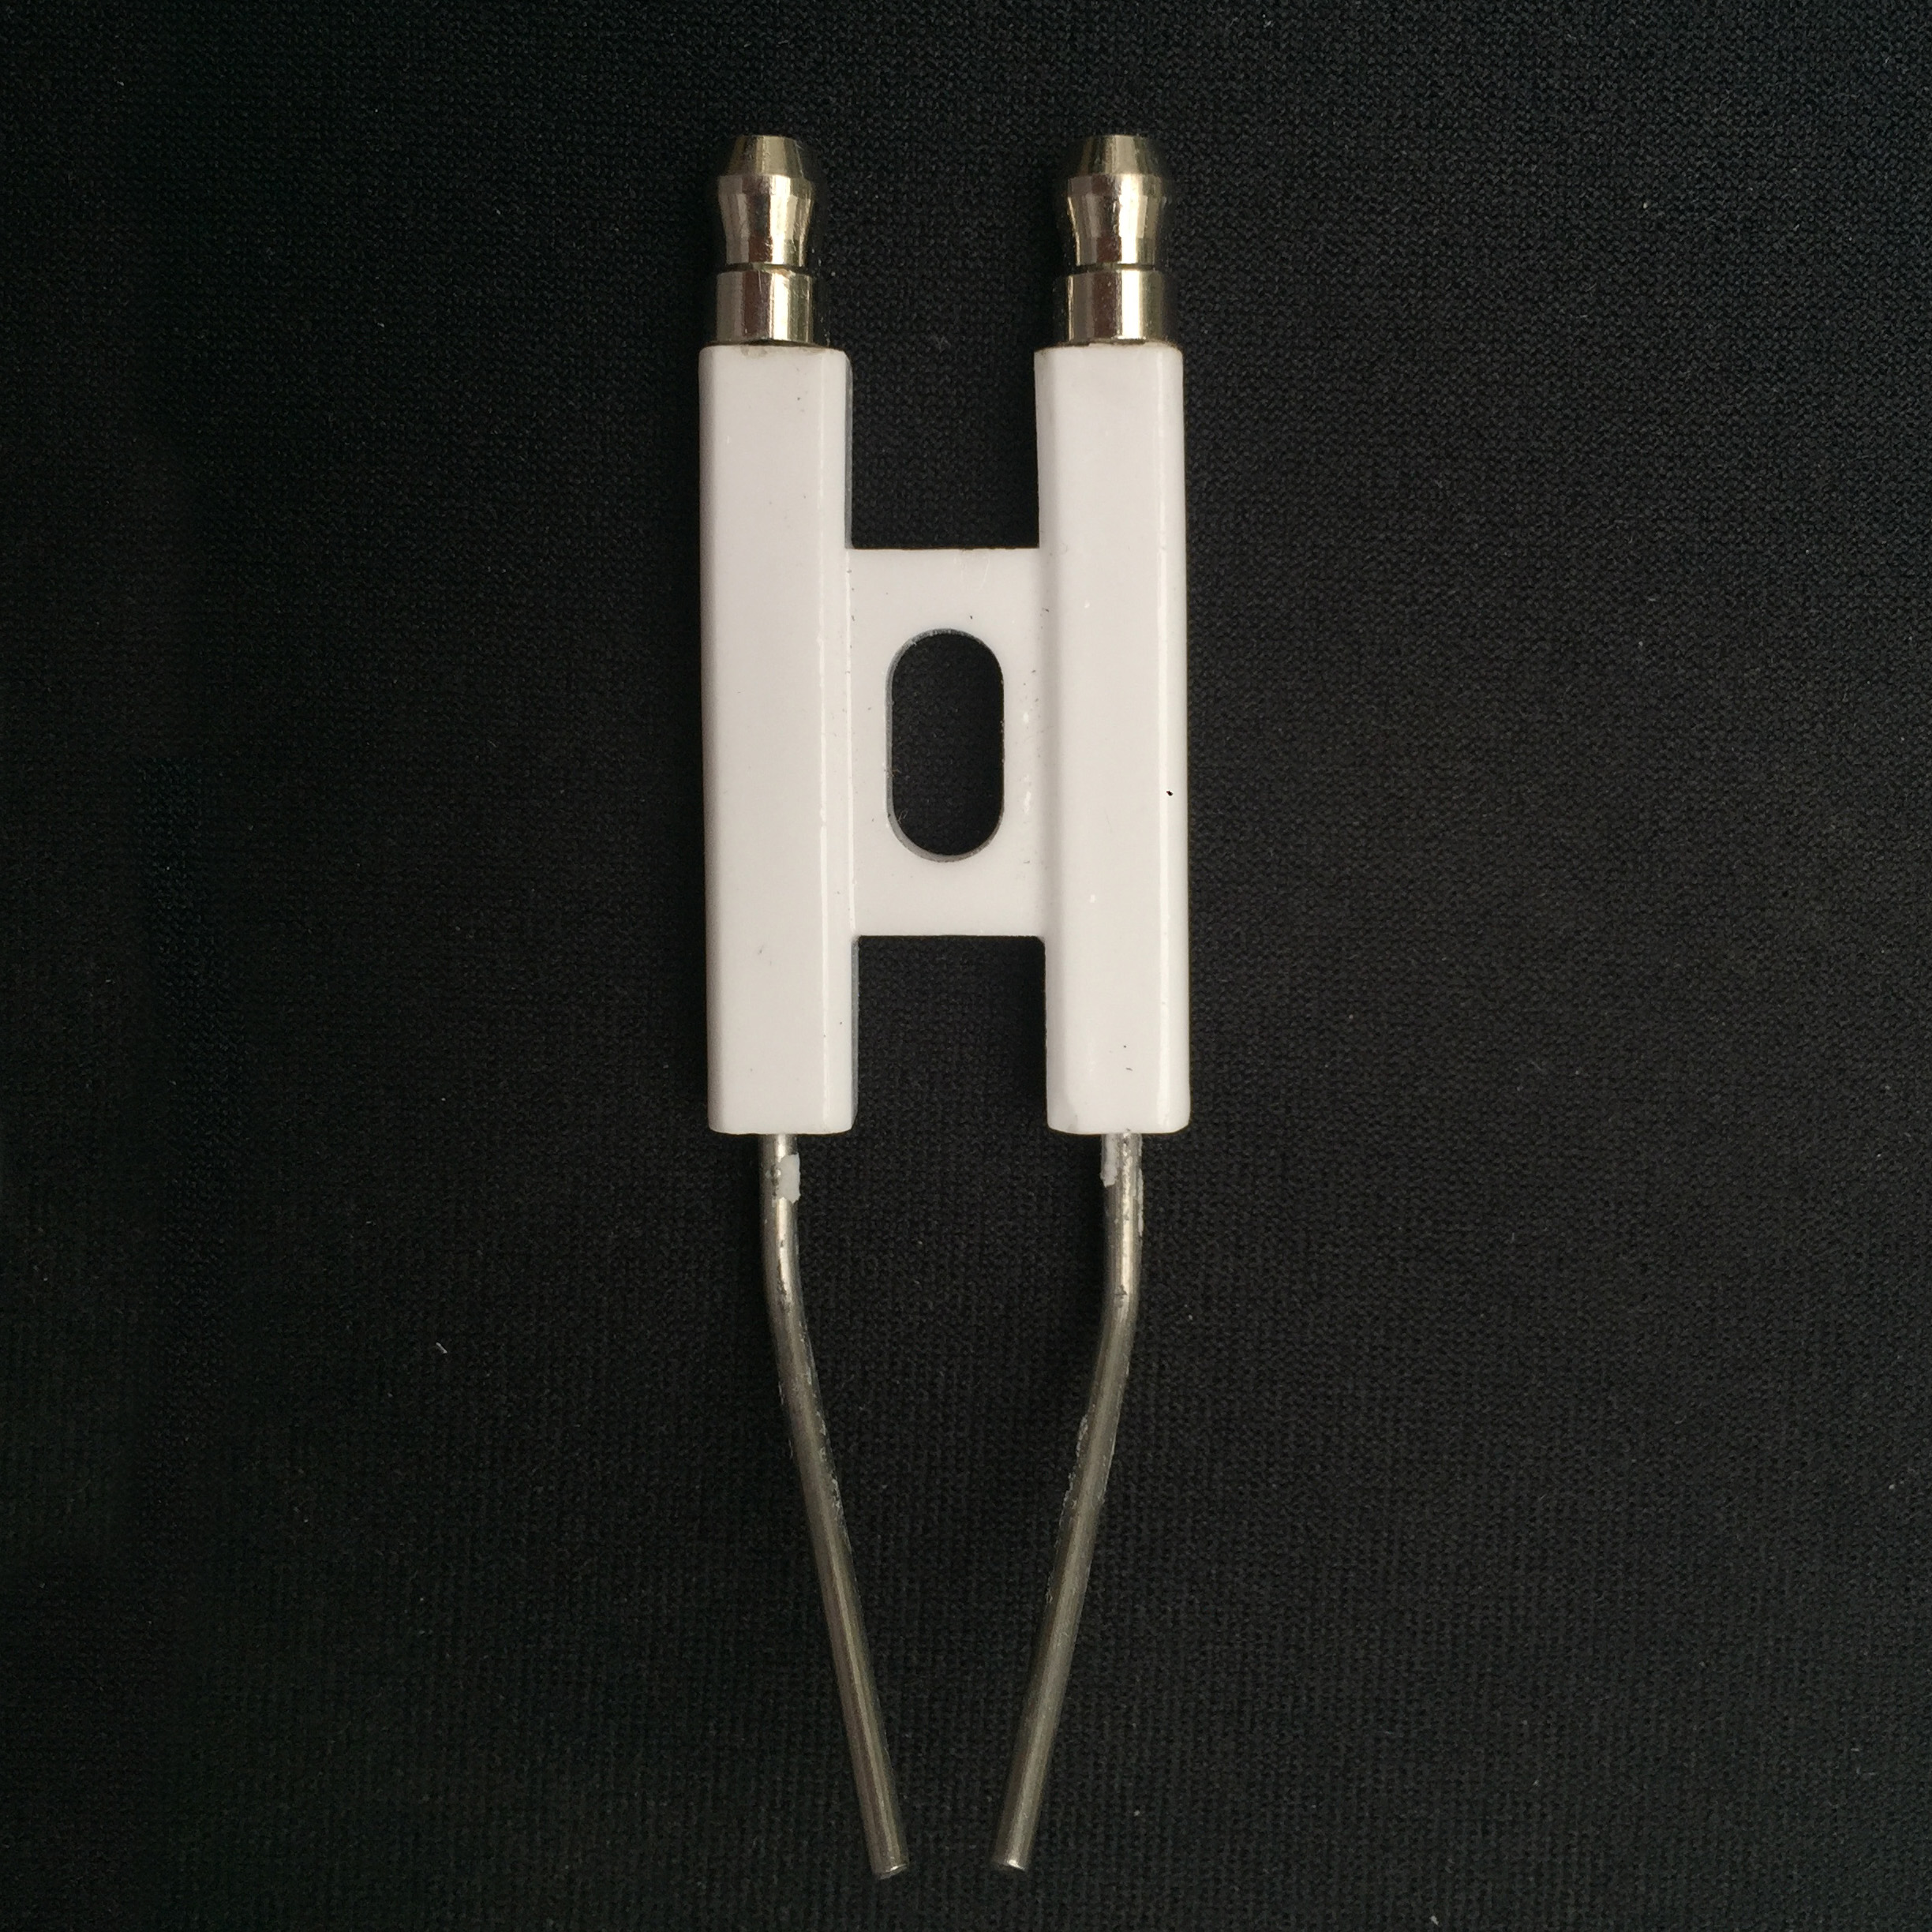 H Type Small Ignition Electrodes For Oil Burner Ceramic Electrode,double Pole Ignition Electrode, Ceramic Firing Needle